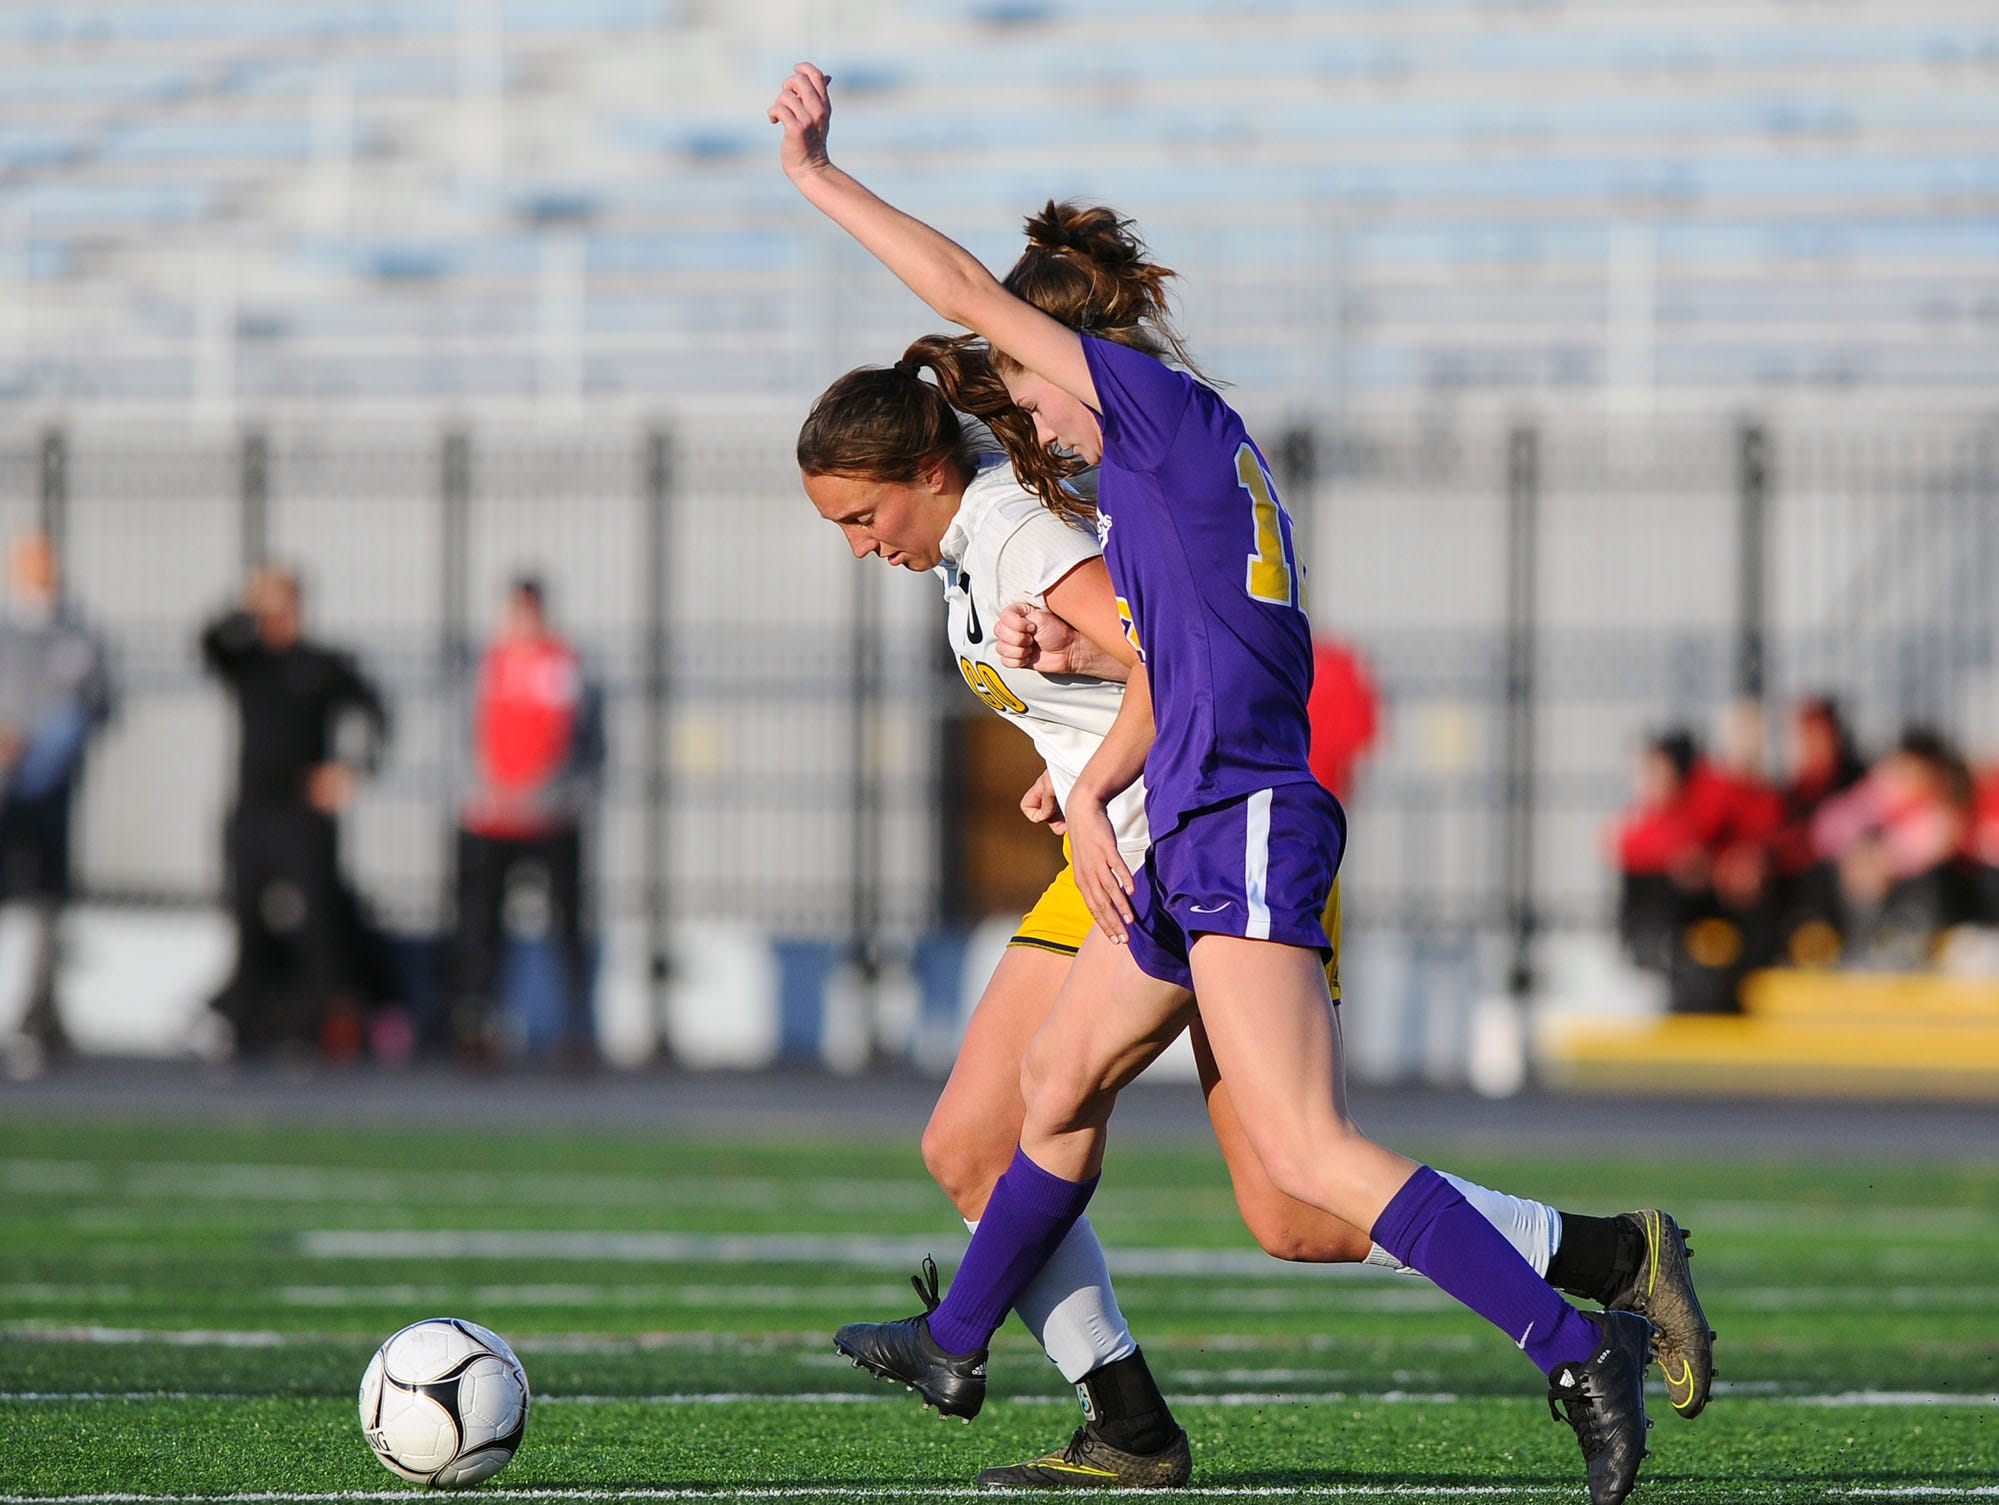 Boiling Springs' Jacelynne Kuhns (12) steps in front of Elco's Ryelle Shuey (10) during the first half of play.Shuey was given a free kick as a result of the play and scored the only goal of the game.